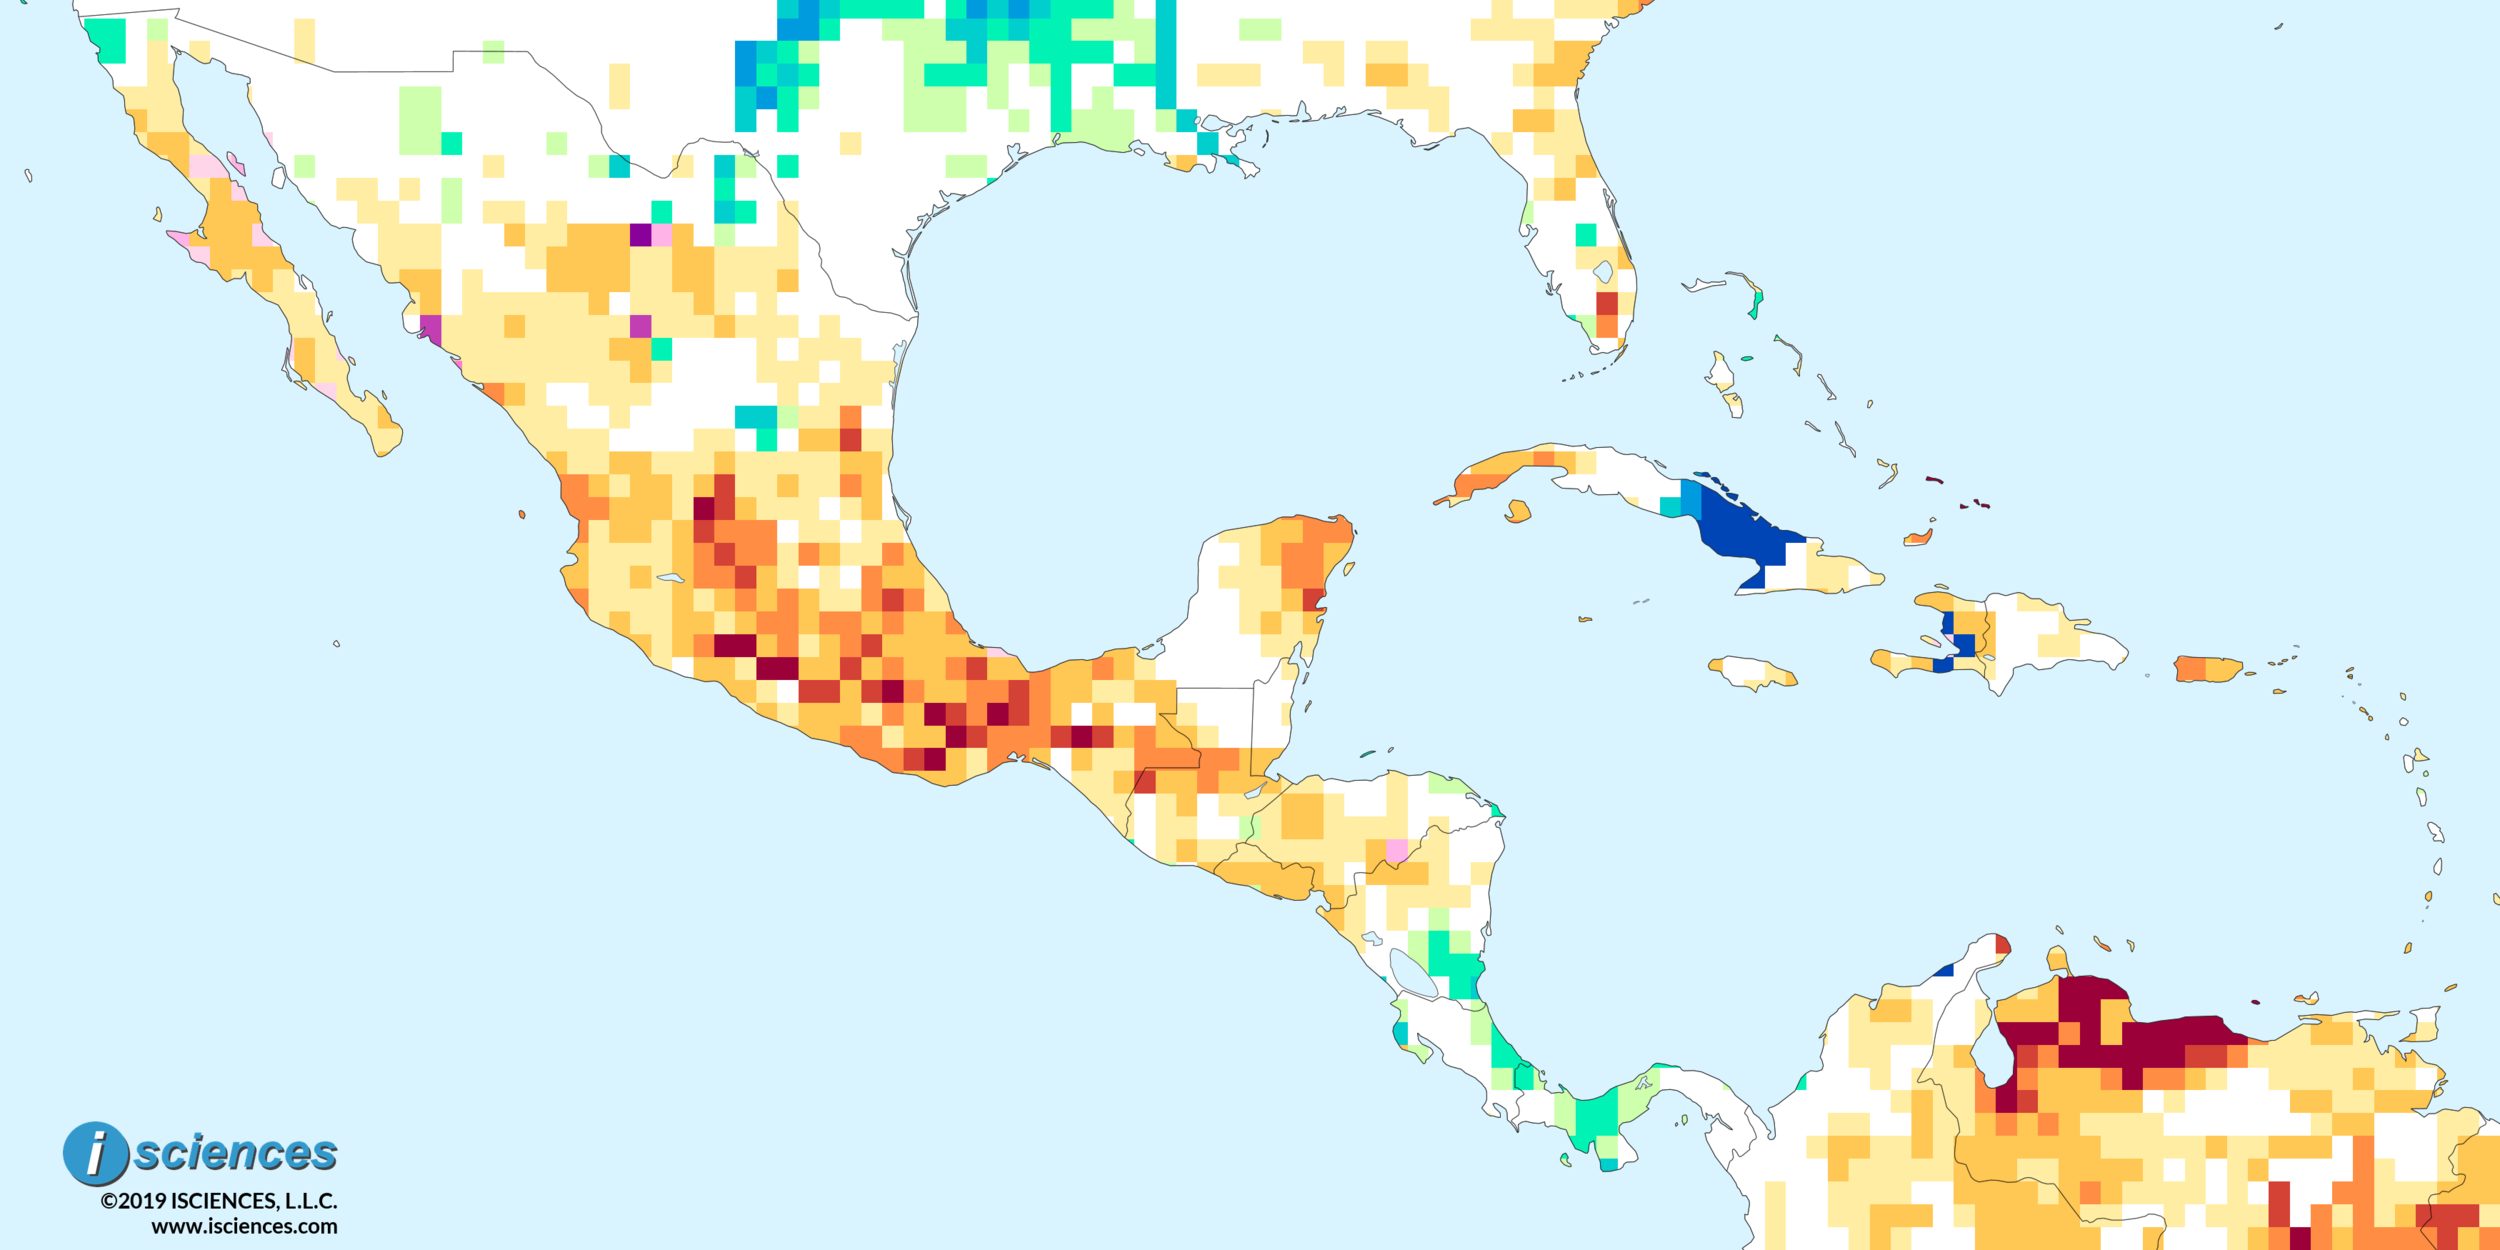 Mexico, Central America, & the Caribbean: Water deficits to ...